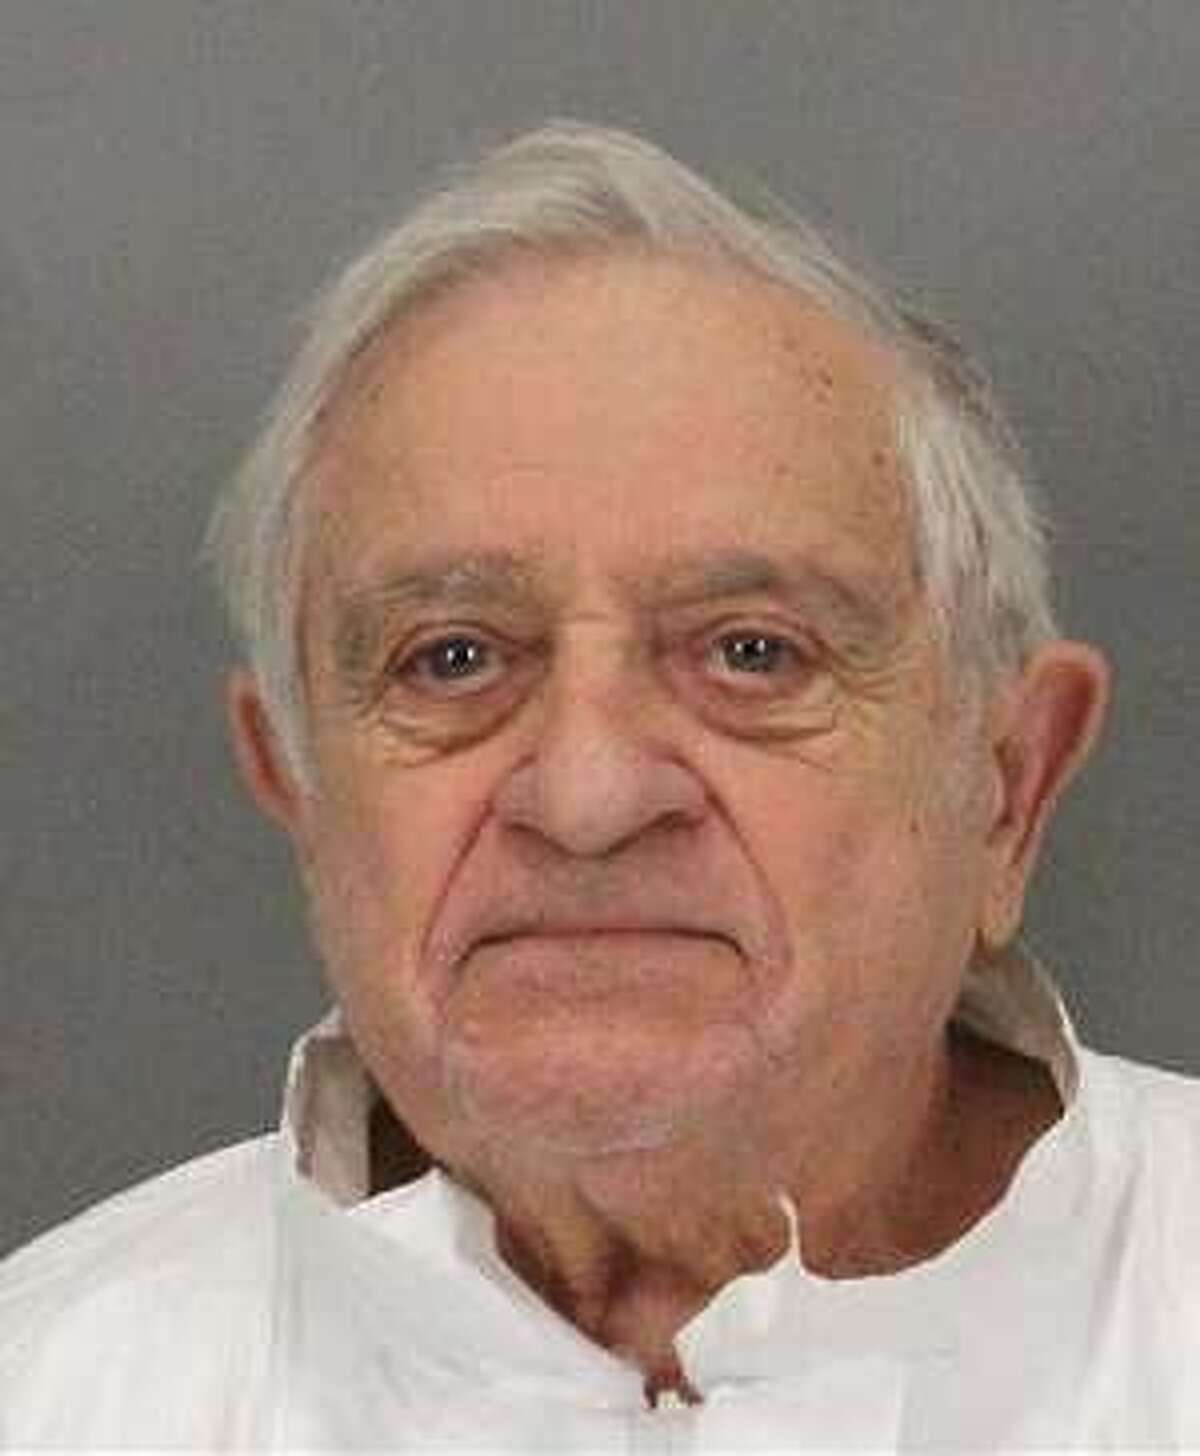 Anthony Aiello, 90, of San Jose, is suspected of murdering his stepdaughter Karen Navarra, 67, according to the San Jose Police Department. He is being held without bail in the Santa Clara County Jail.